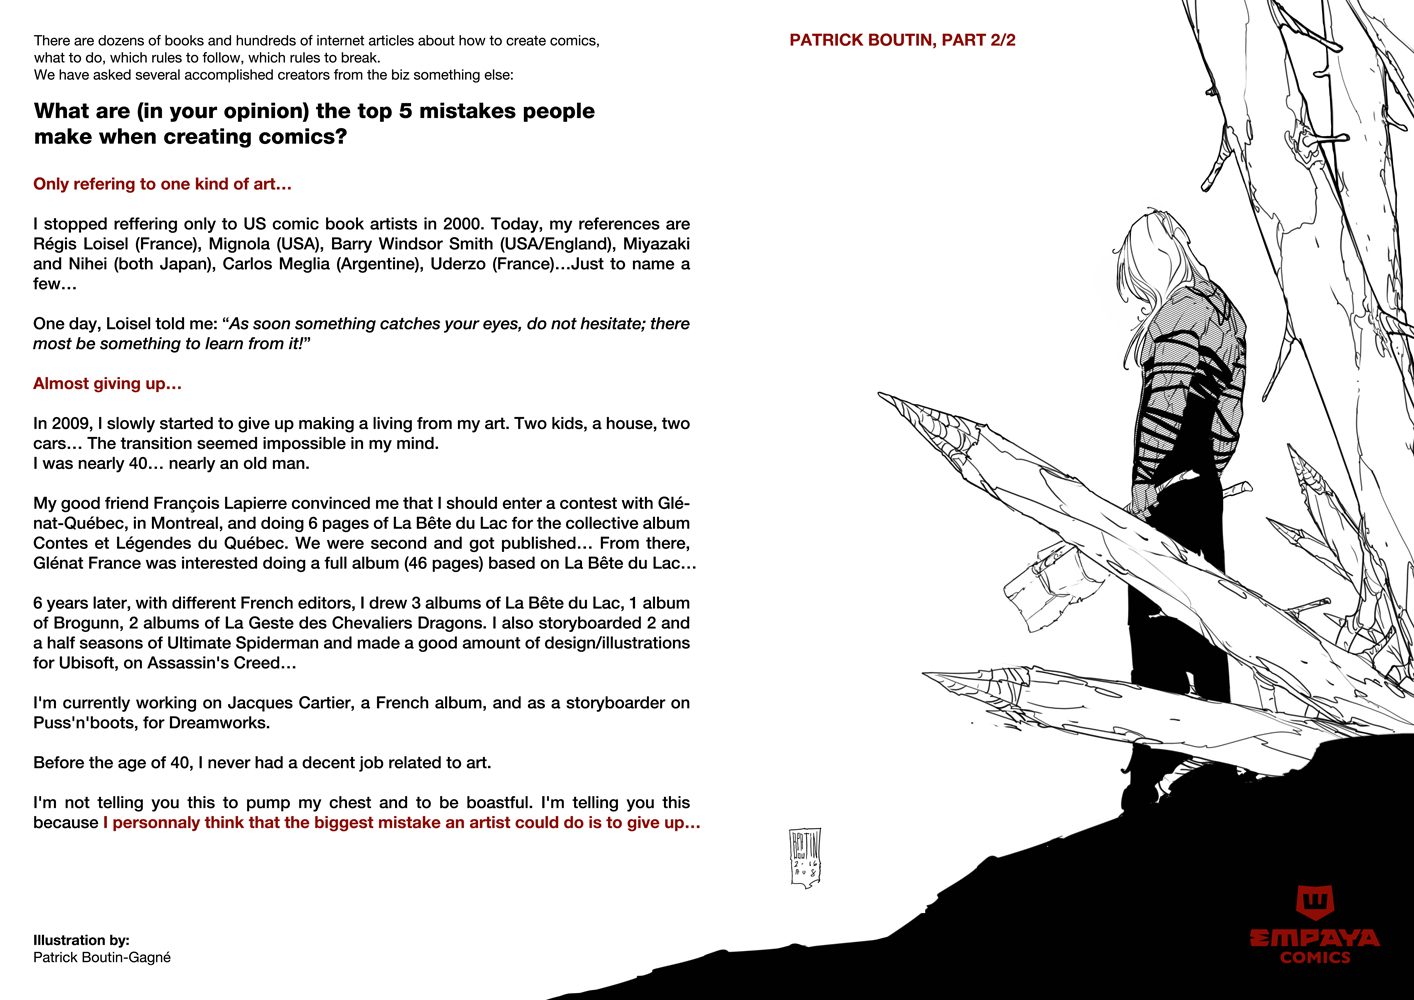 Top5 mistakes when creating comics: Pat Boutin 2